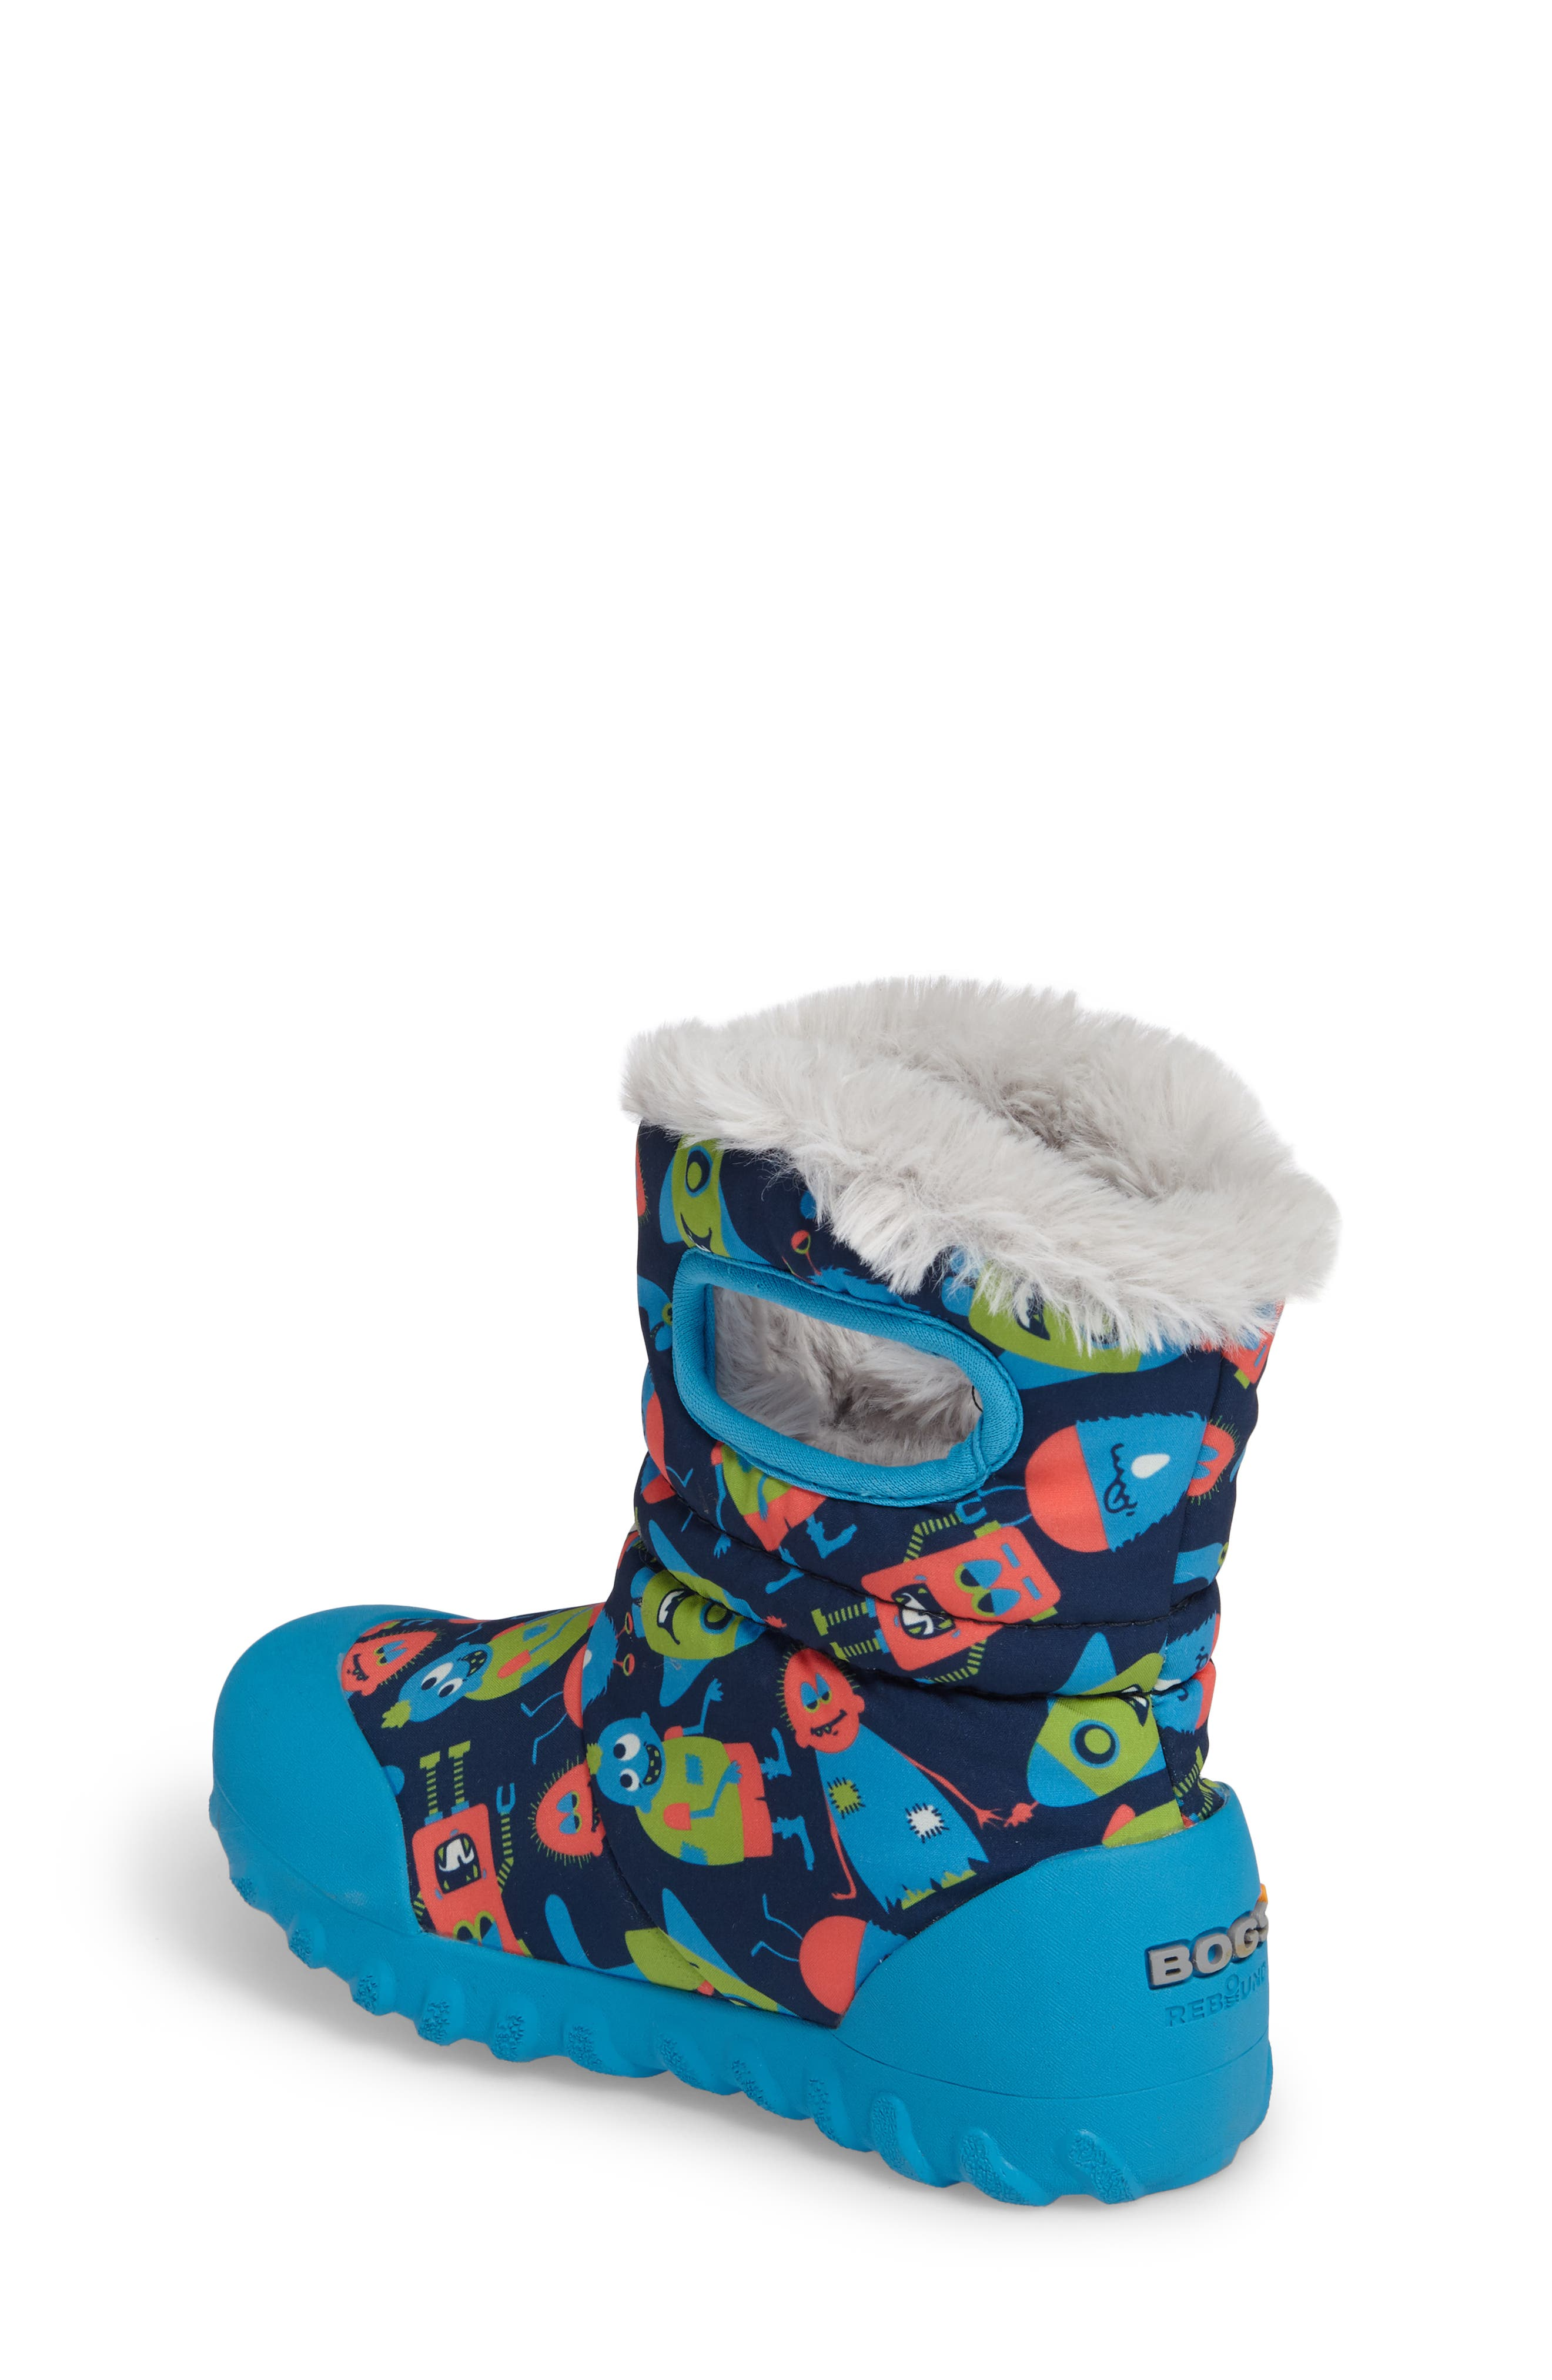 Alternate Image 2  - Bogs B-MOC Monsters Waterproof Insulated Faux Fur Boot (Toddler & Little Kid)